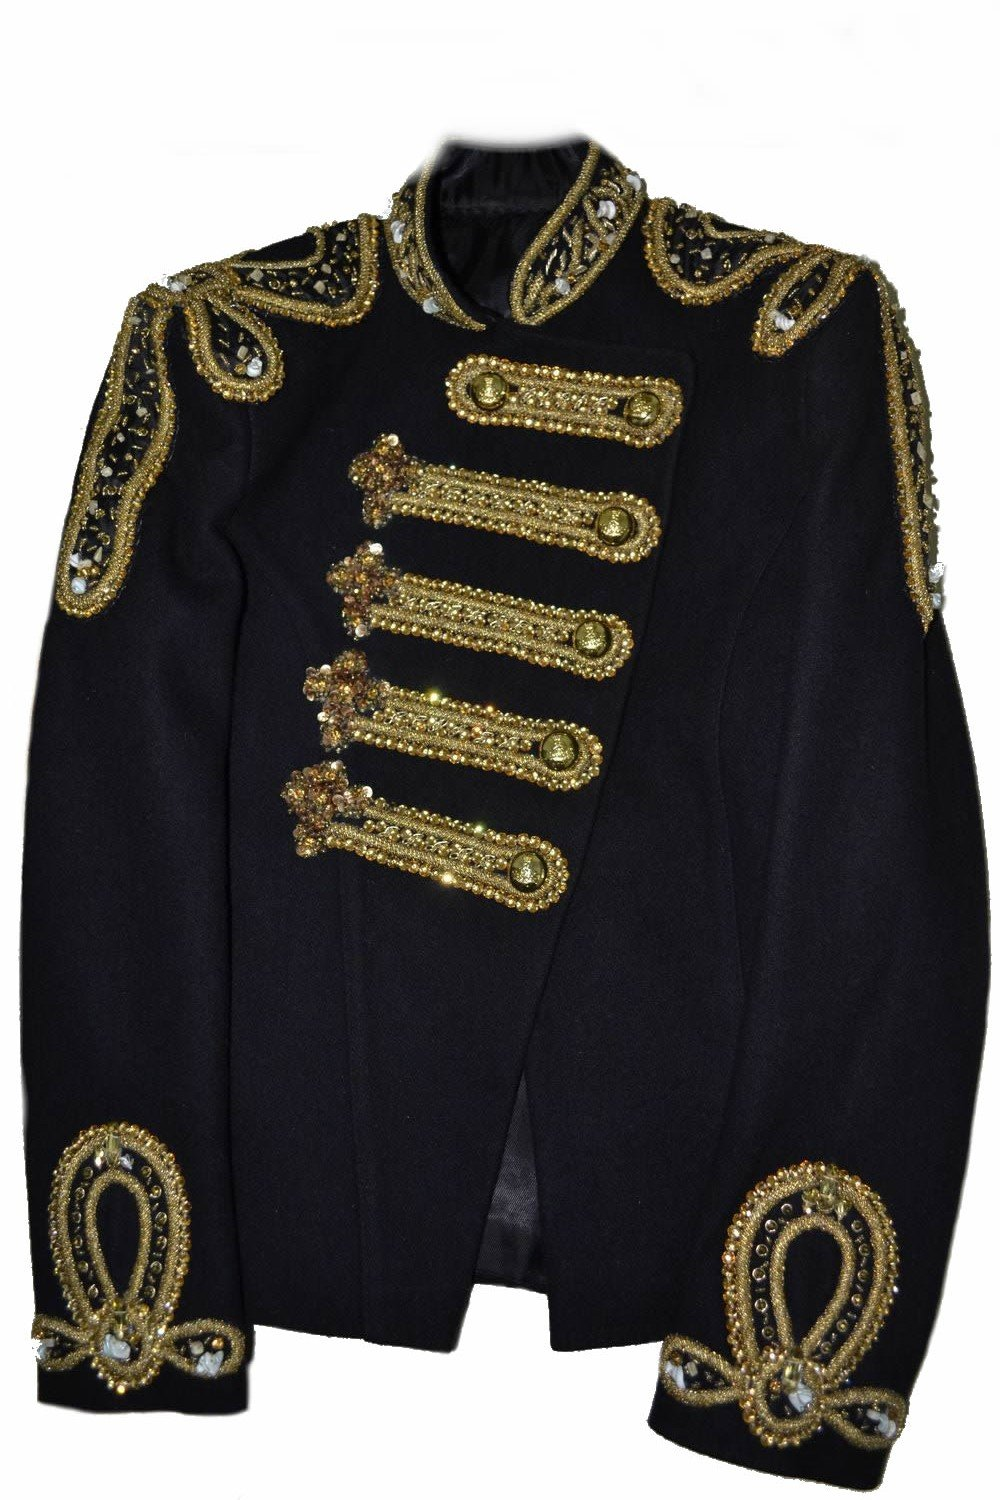 Classyak Women Balmain Military Style Wedding Jacket Suit - All Gold Beads (XL) by Classyak